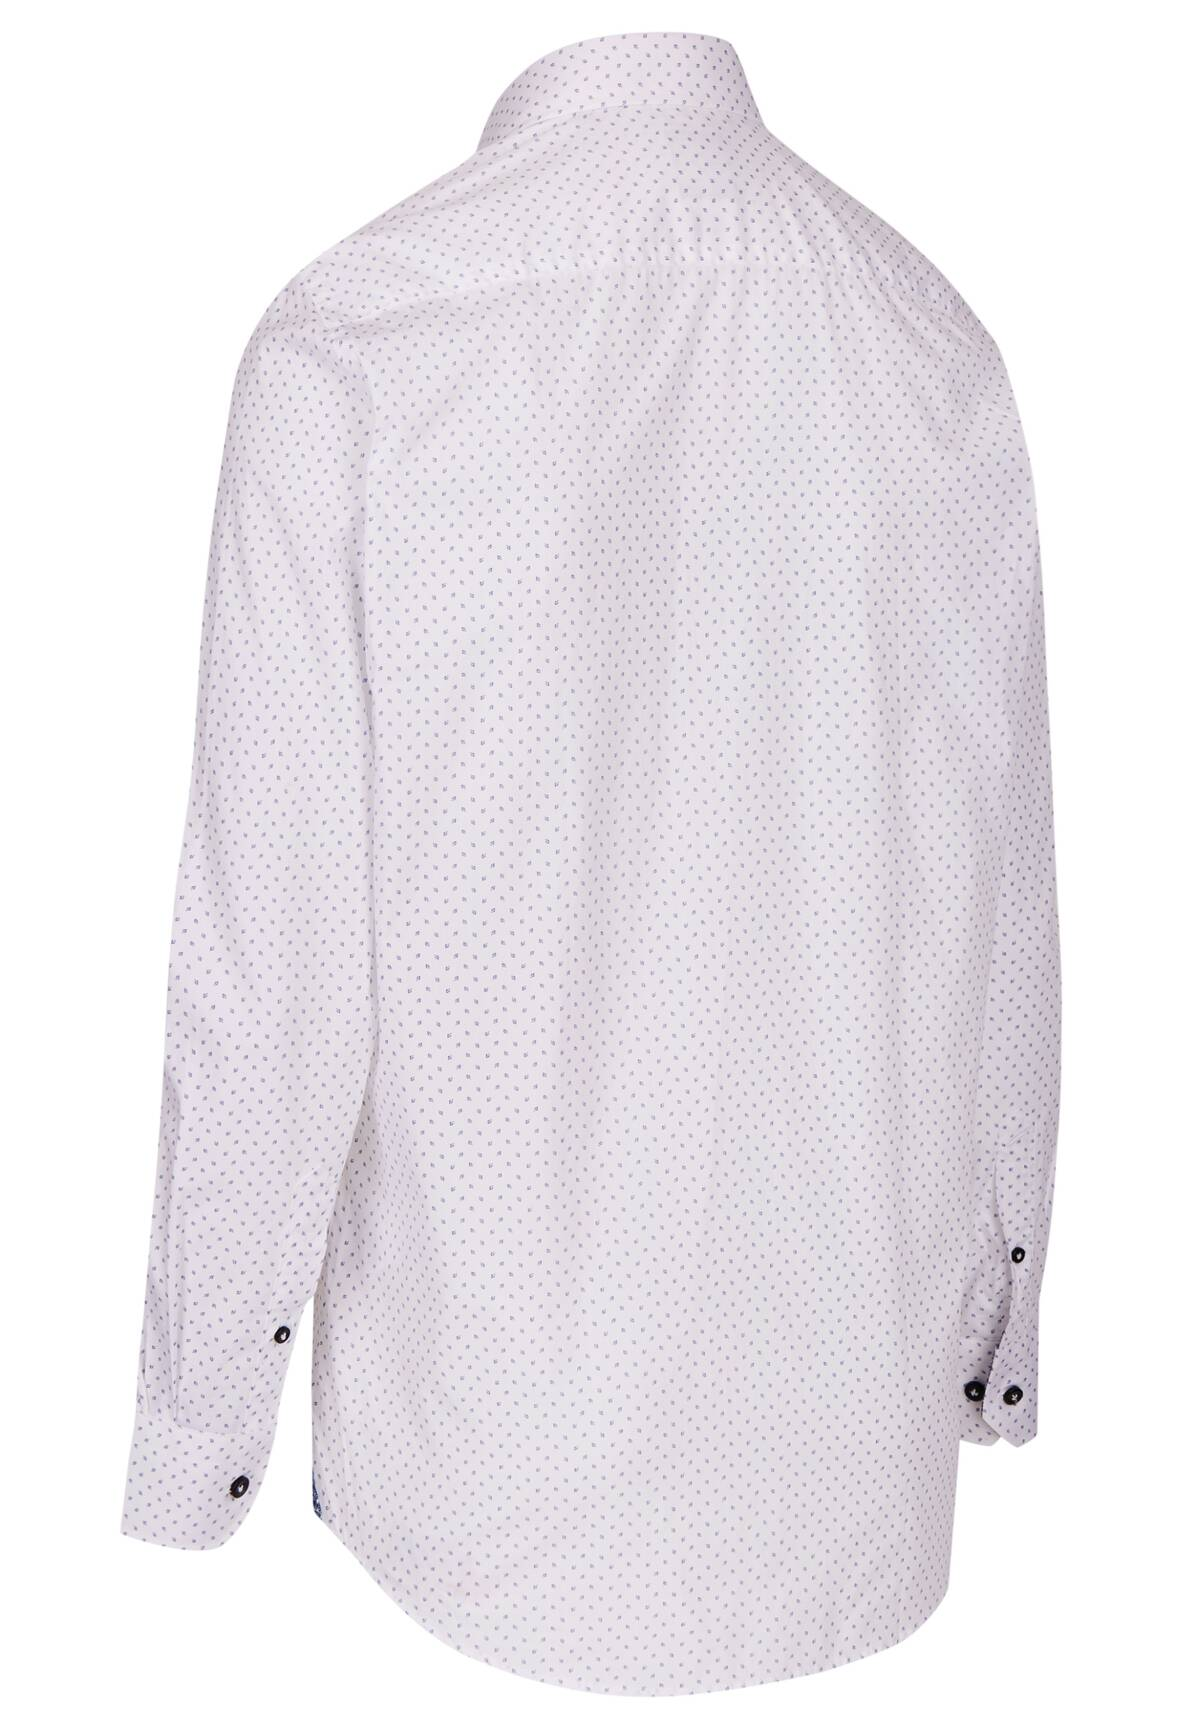 Sportives City-Hemd / SHIRT MODERN FIT